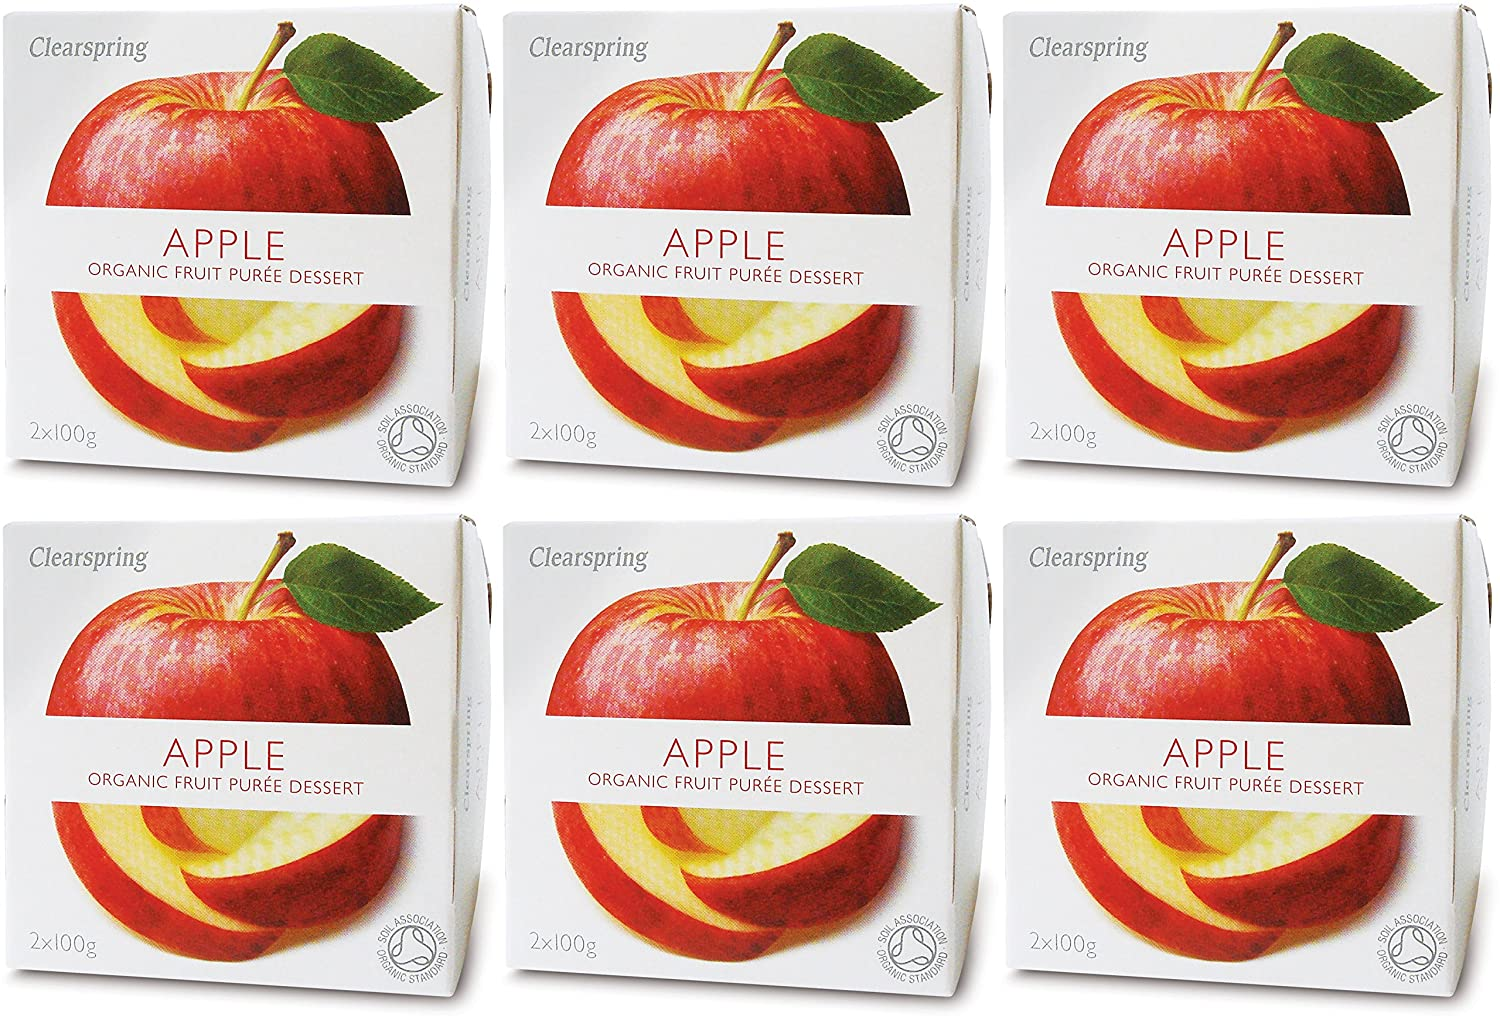 (6 PACK) - Clearspring - Fruit Puree Apple | 2 X 100g | 6 PACK BUNDLE Groceries